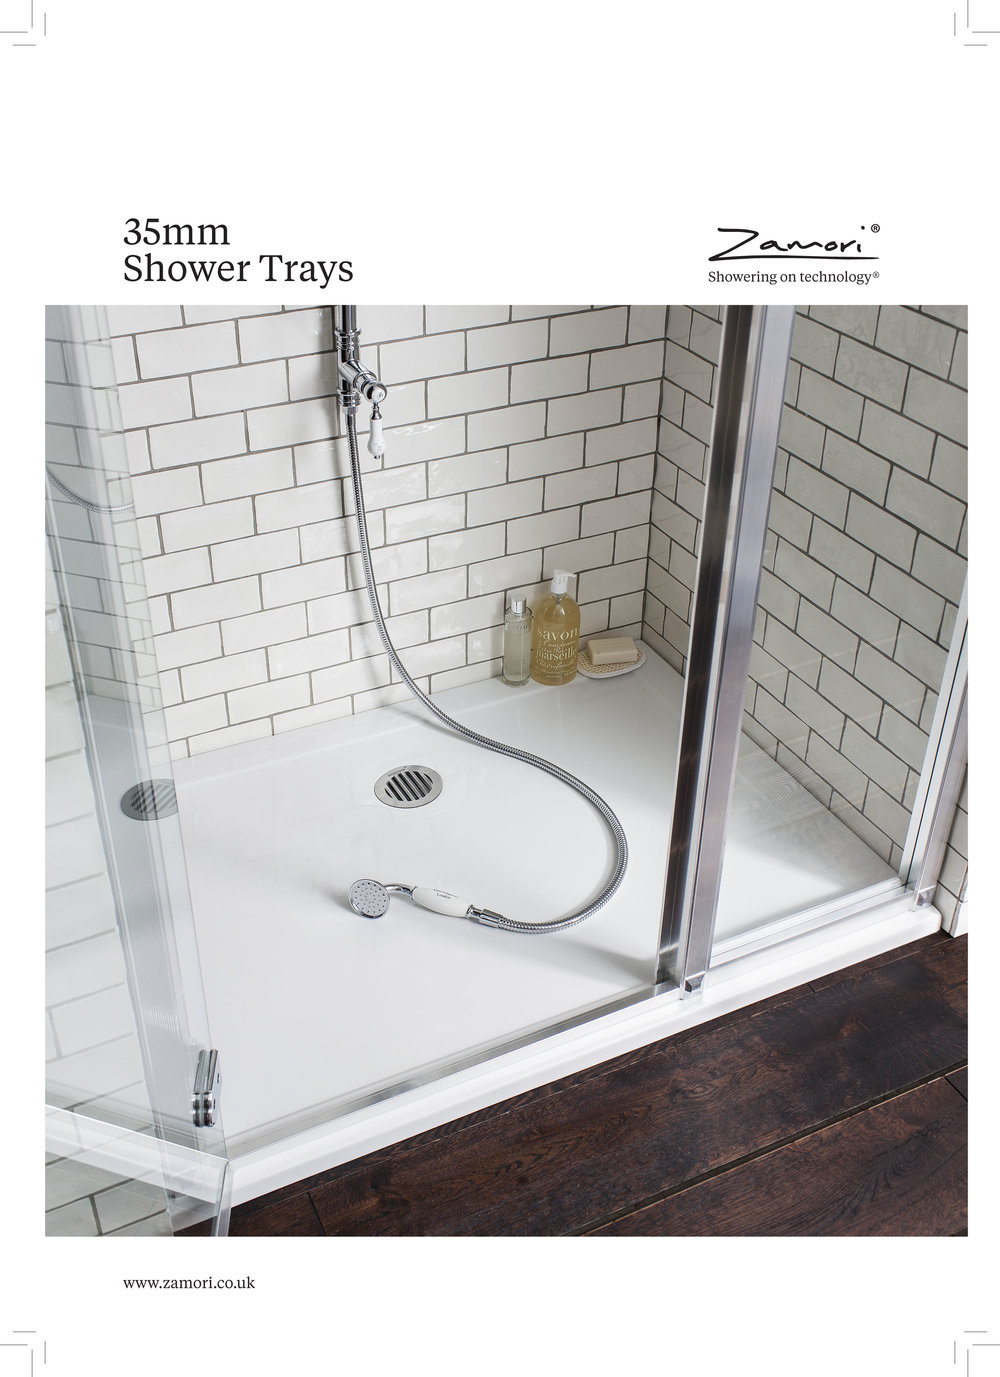 Zamori Brochure Waterloo Bathrooms Dublin.jpg